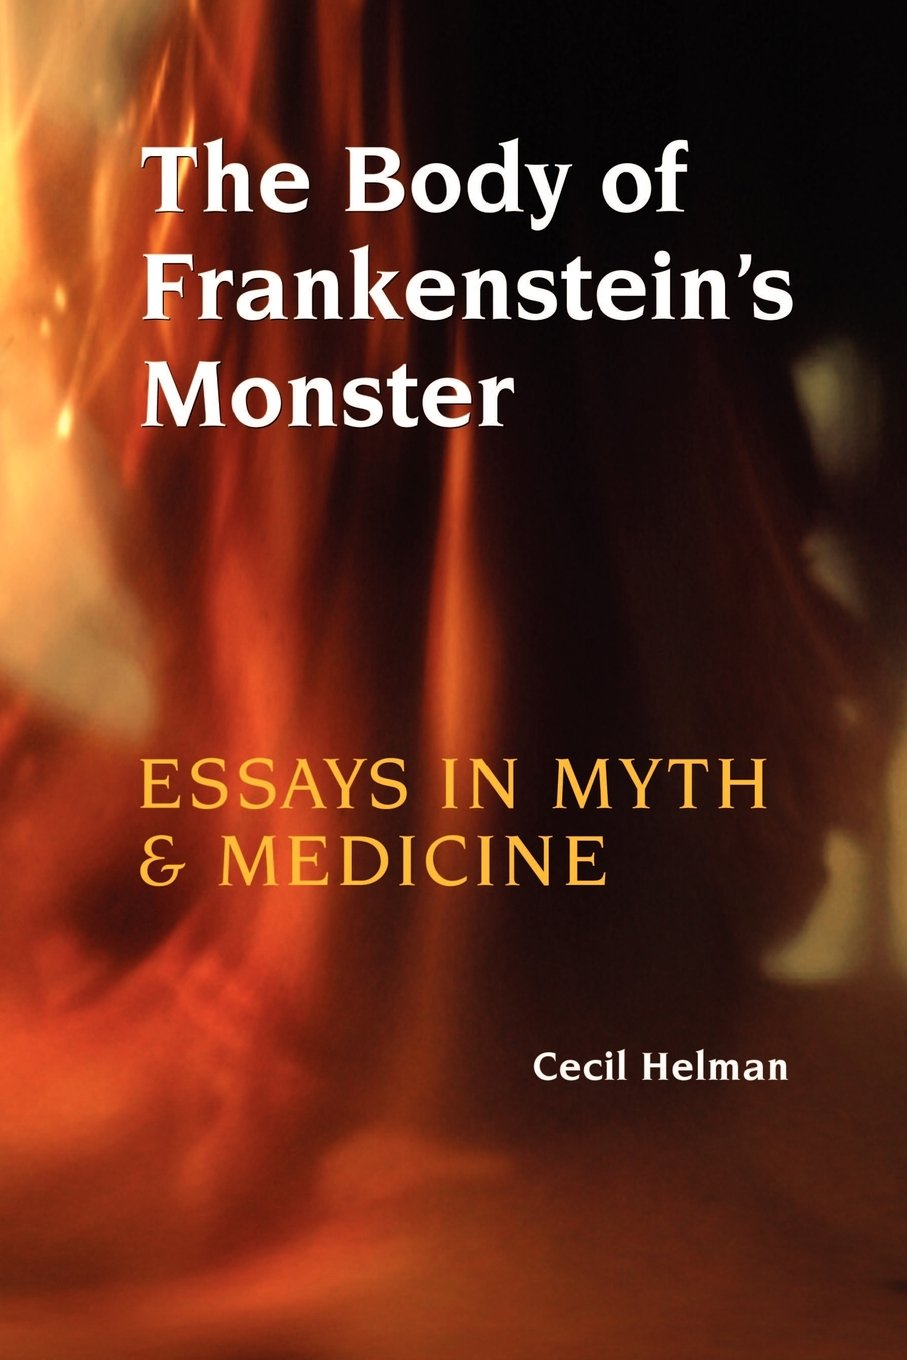 the body of frankenstein s monster essays in myth and medicine  the body of frankenstein s monster essays in myth and medicine cecil helman 9781931044837 com books